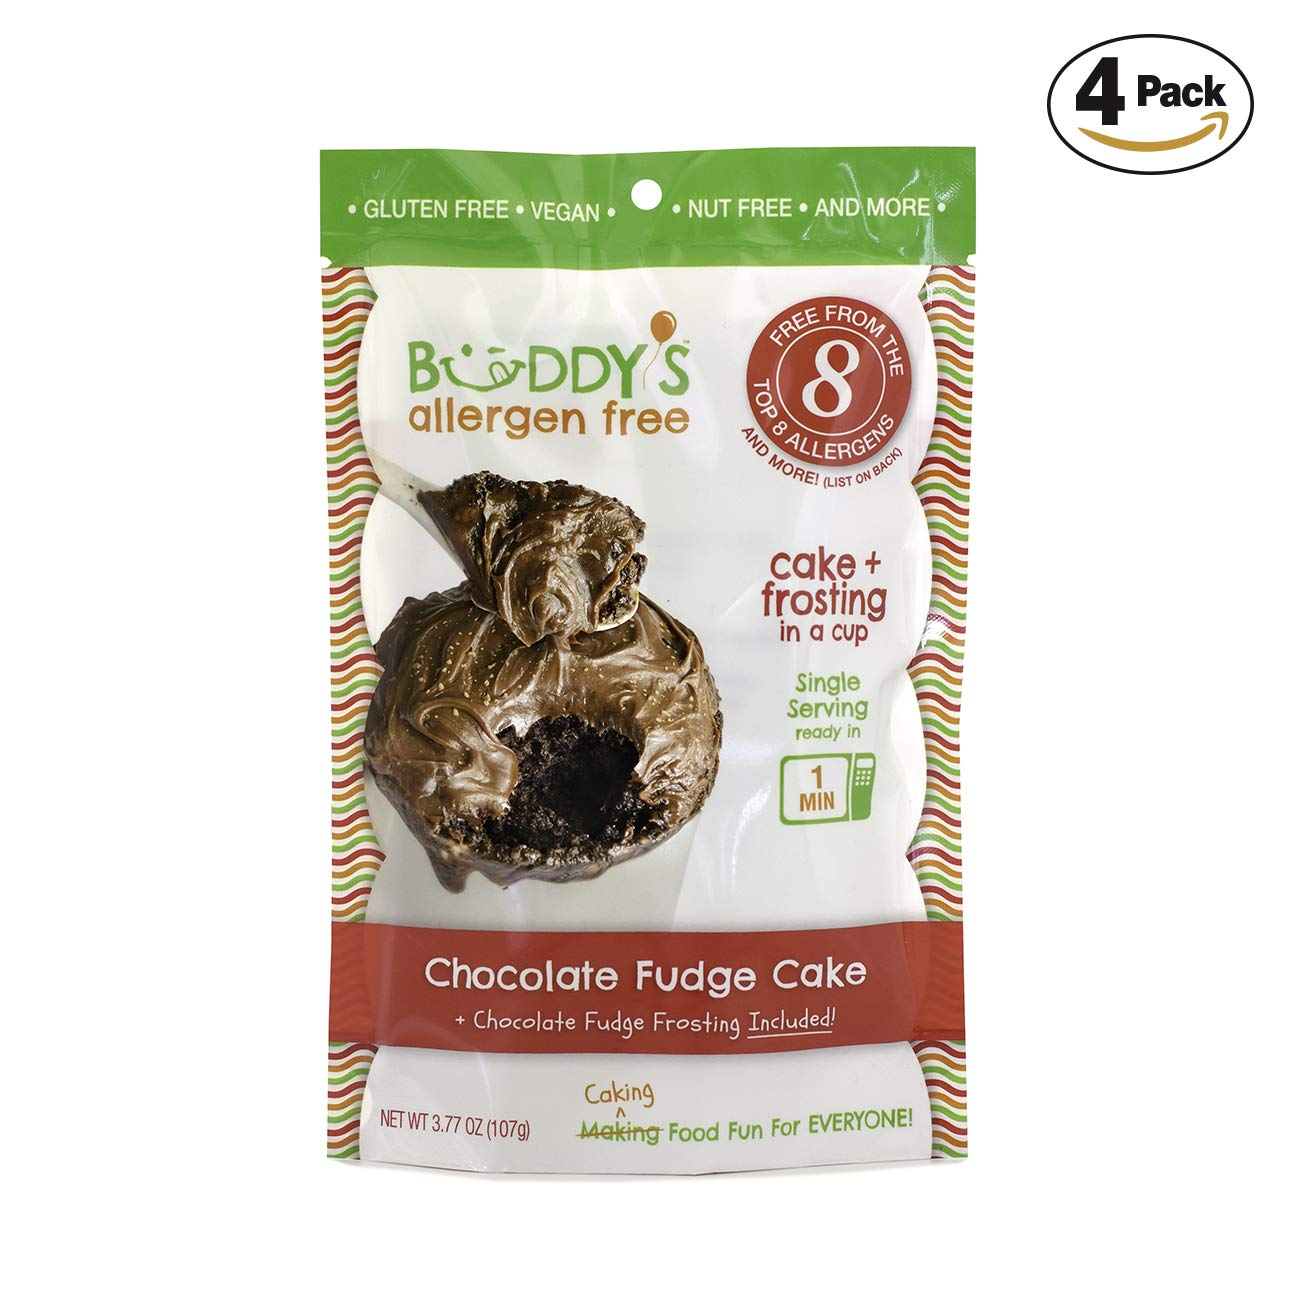 Buddy's Allergen Free: (CHOCOLATE FUDGE) Gluten Free Cakes - Frosting Included - Vegan Dessert - Nut Free Cakes - Top 8 Allergen Free Food - Nut Free Desserts - Mug Cakes - Gourmet Snack 4 PACK (16oz) by Buddy's Allergen Free